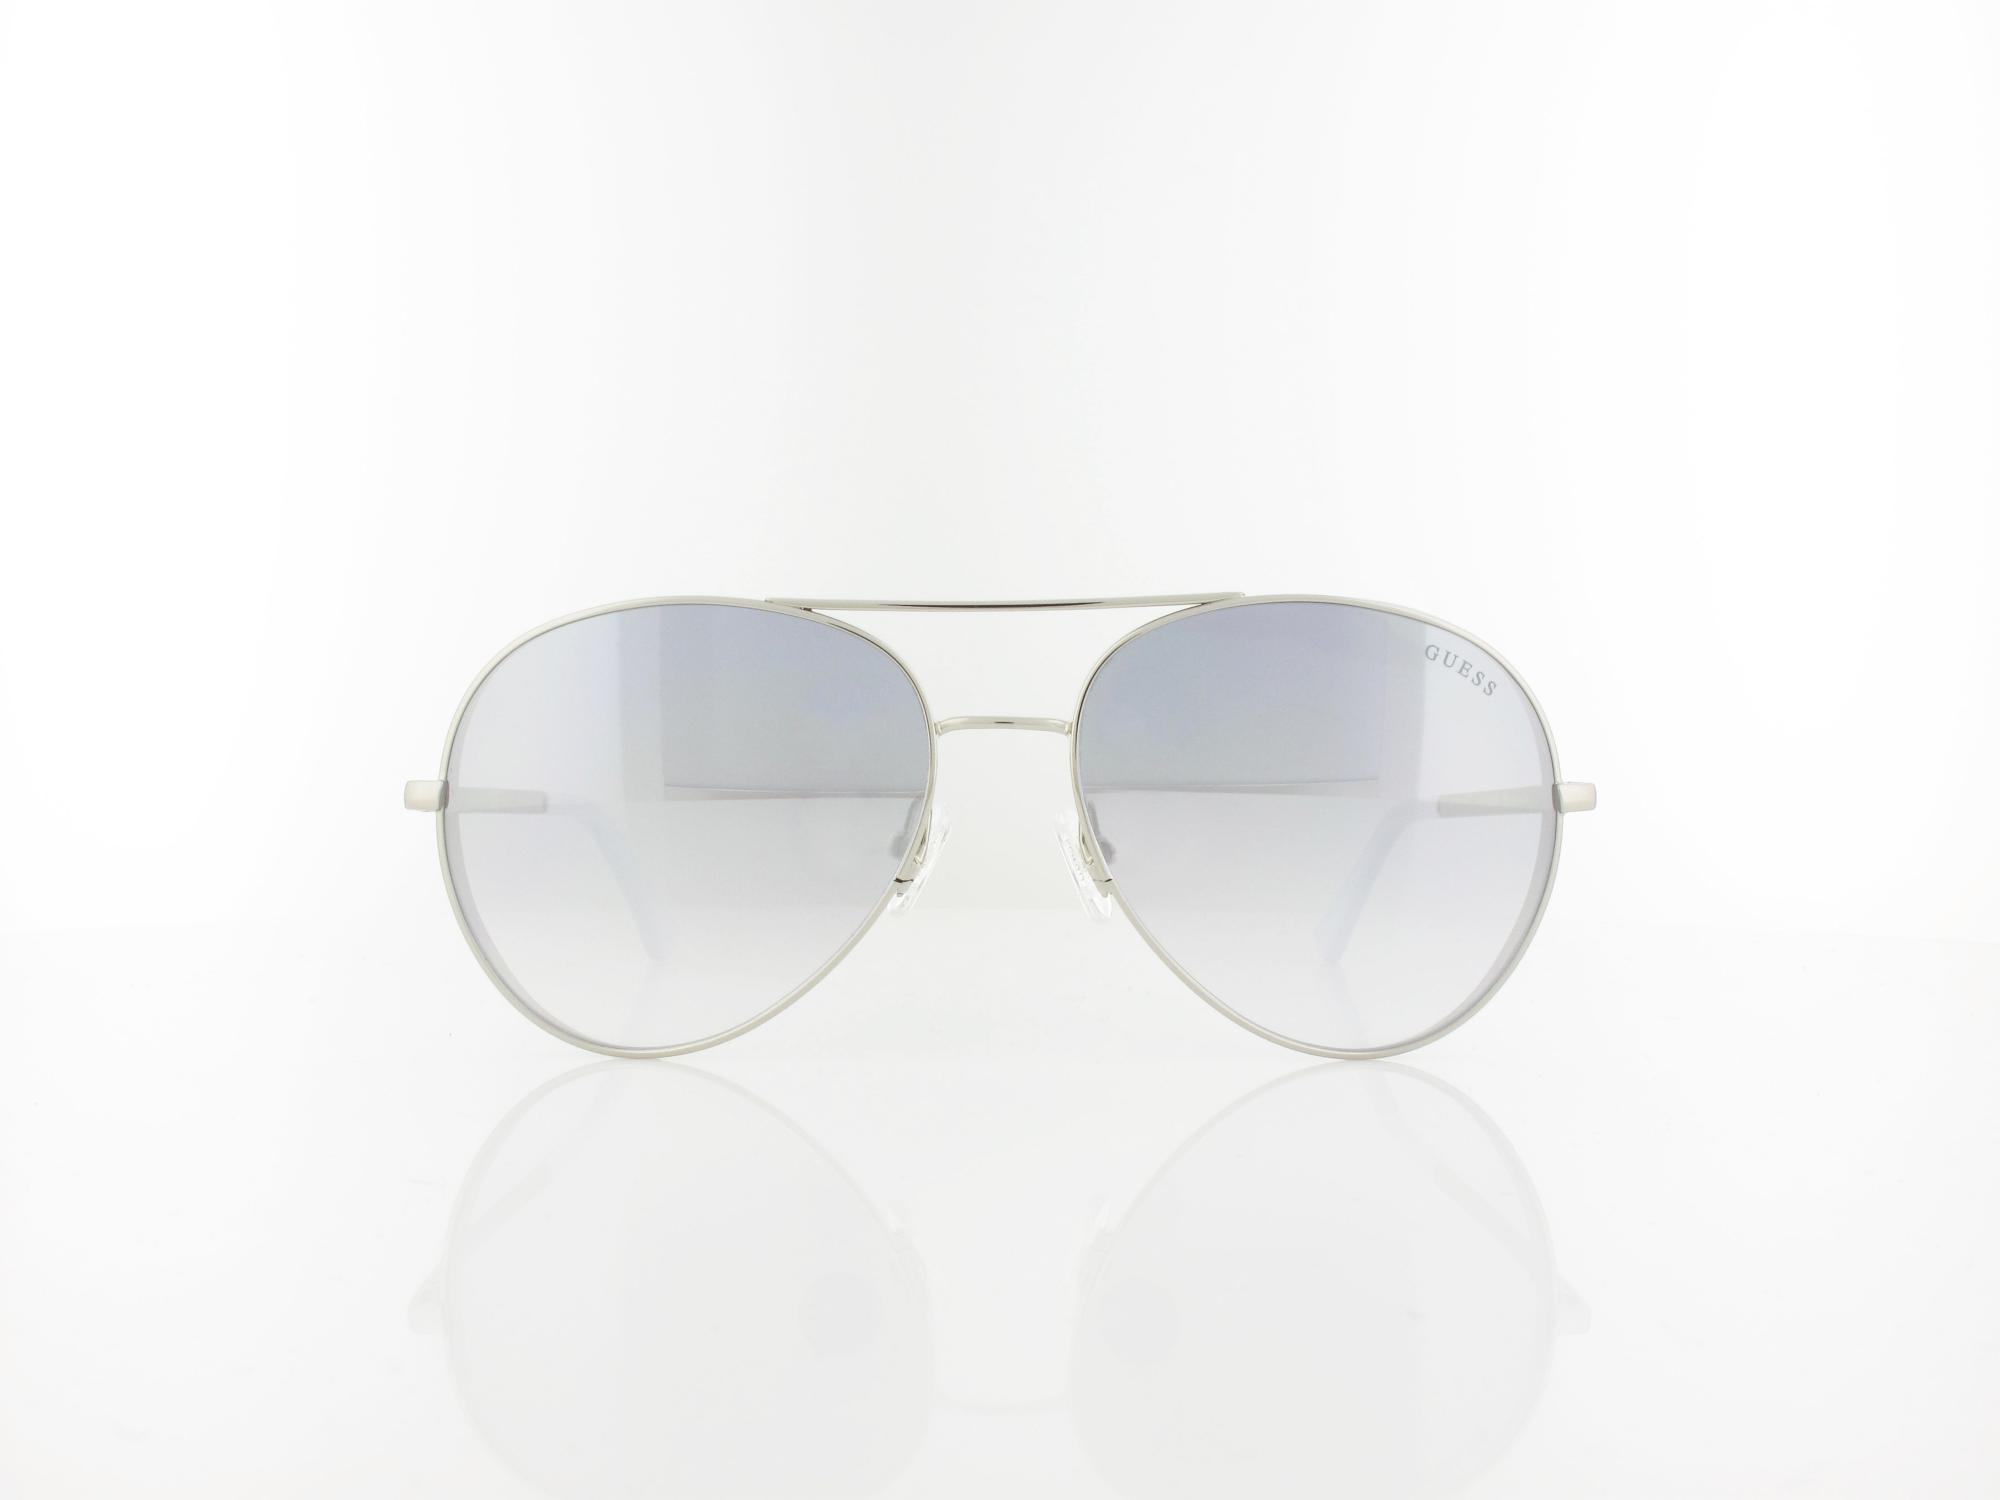 Guess | GU7607/S 20C 58 | grey / grey mirror